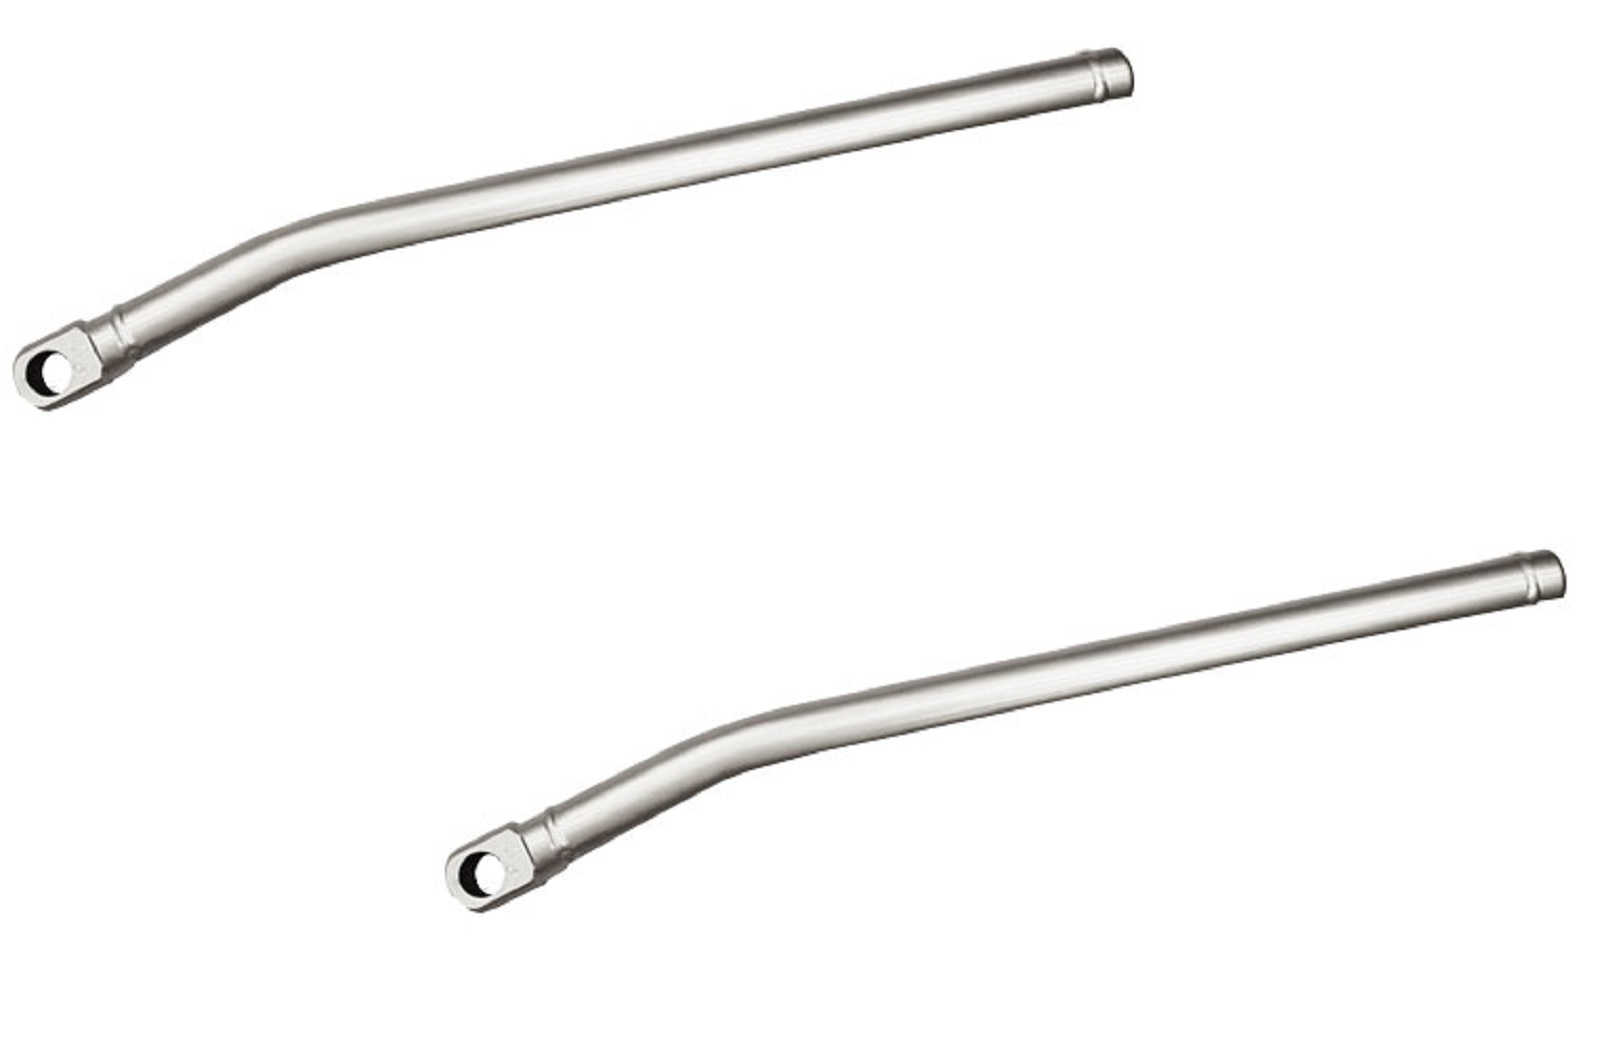 Max Clearance Upper Radius Bar Kit Polaris RZR 1000 XP 2017-2019 Silver 12mm